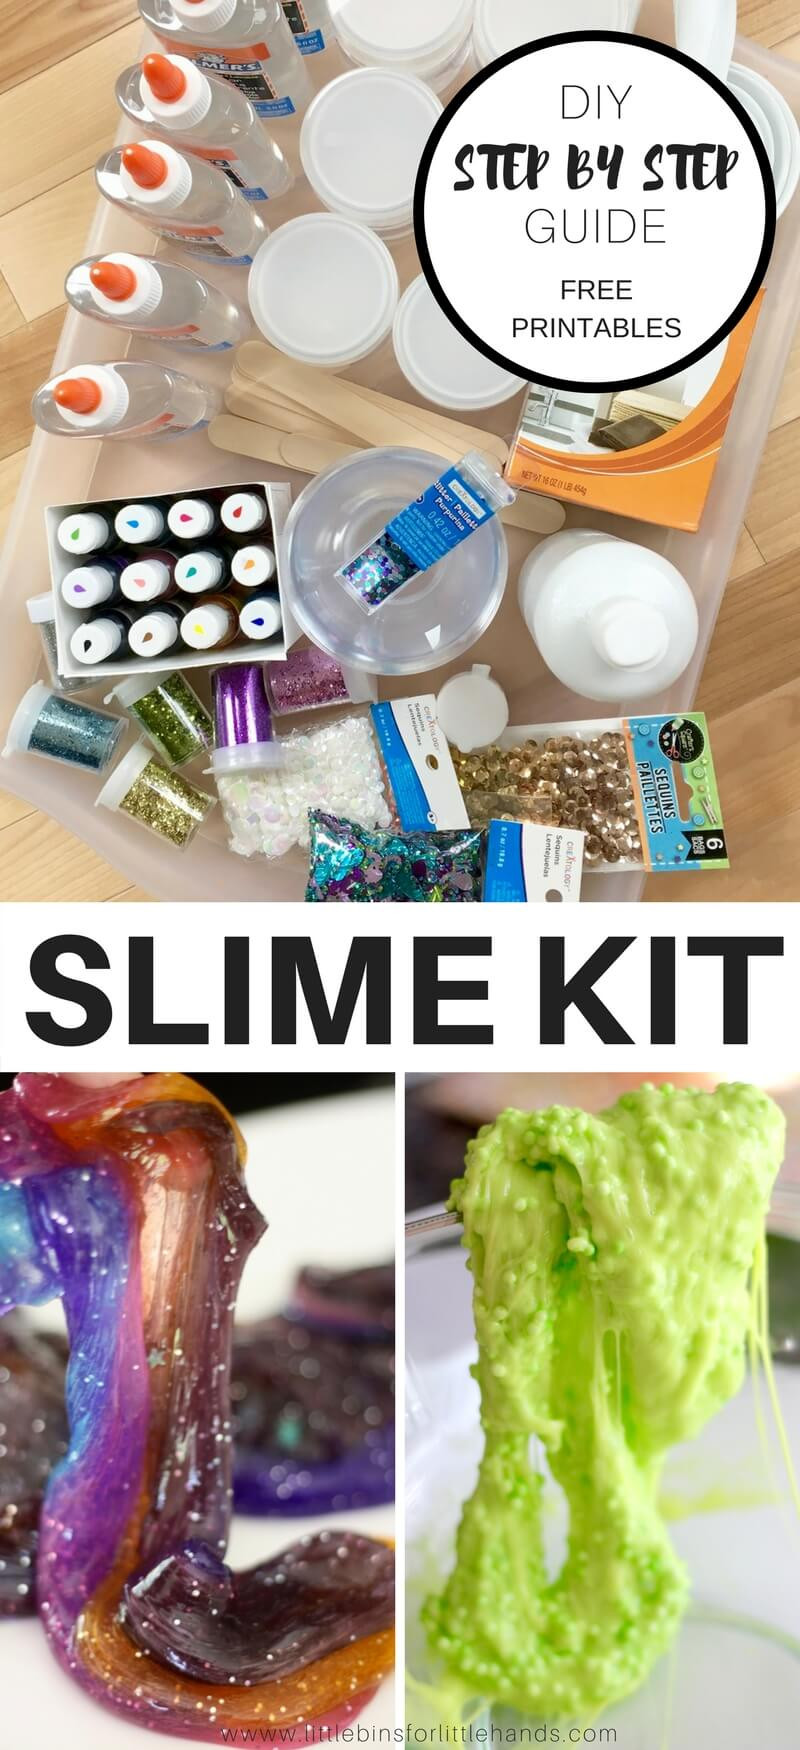 Best ideas about DIY Slime Kit . Save or Pin Make Homemade Slime Kit for Kids Science Activities Now.